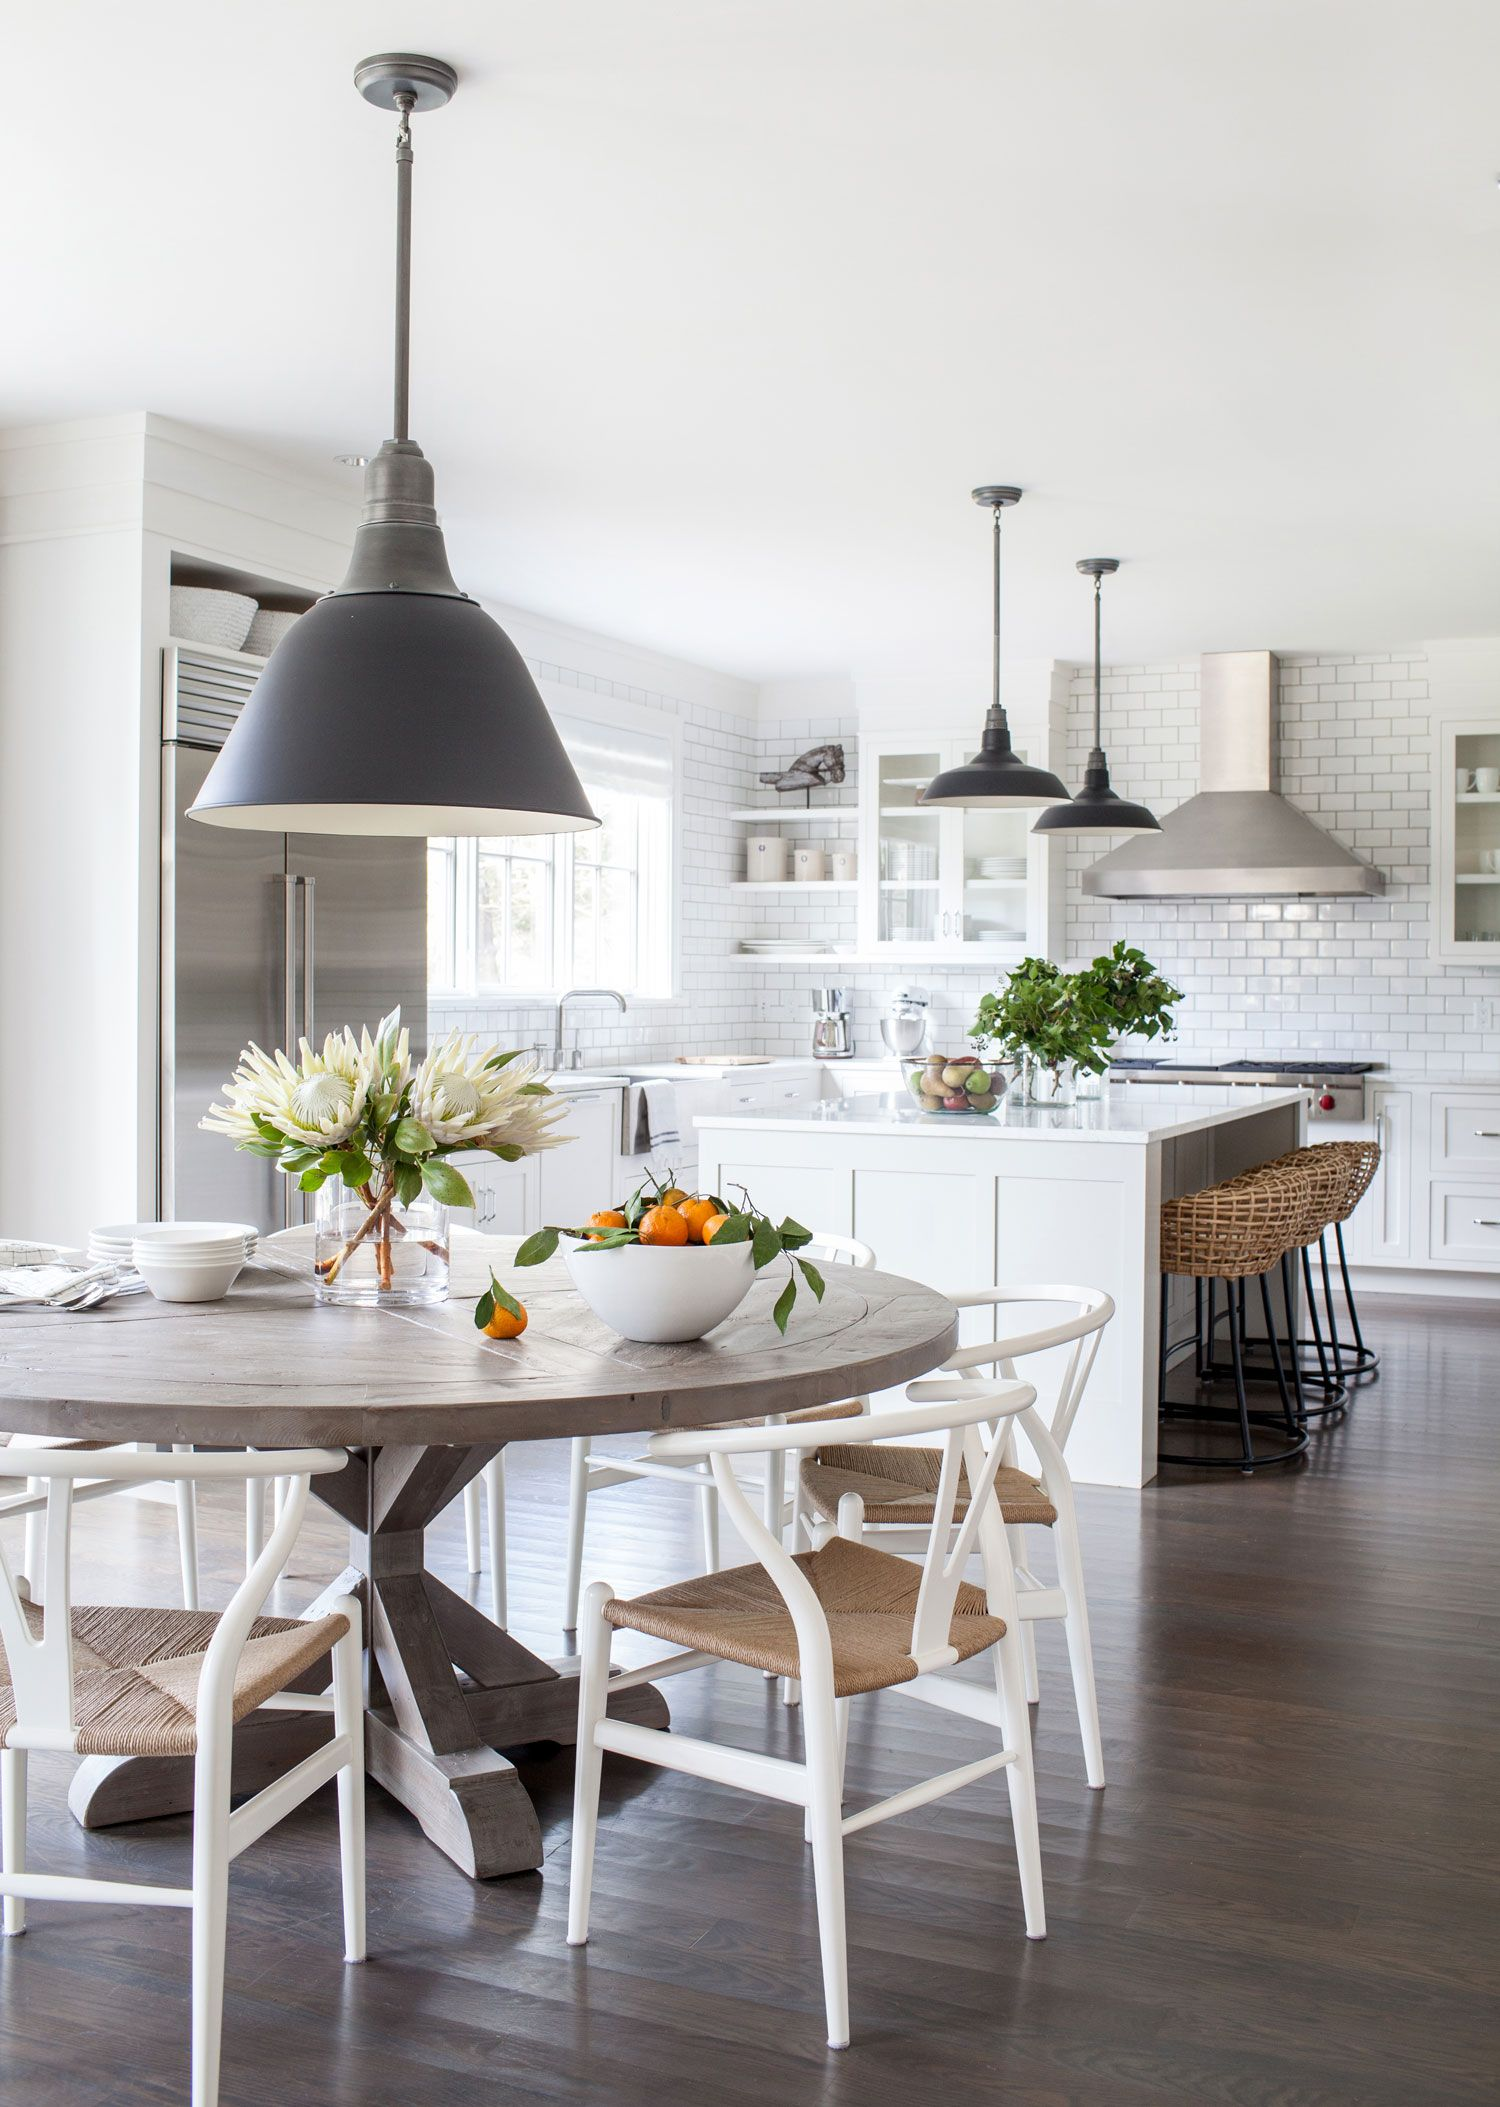 Westport Modern Farmhouse | Farmhouse kitchen tables, Modern ...